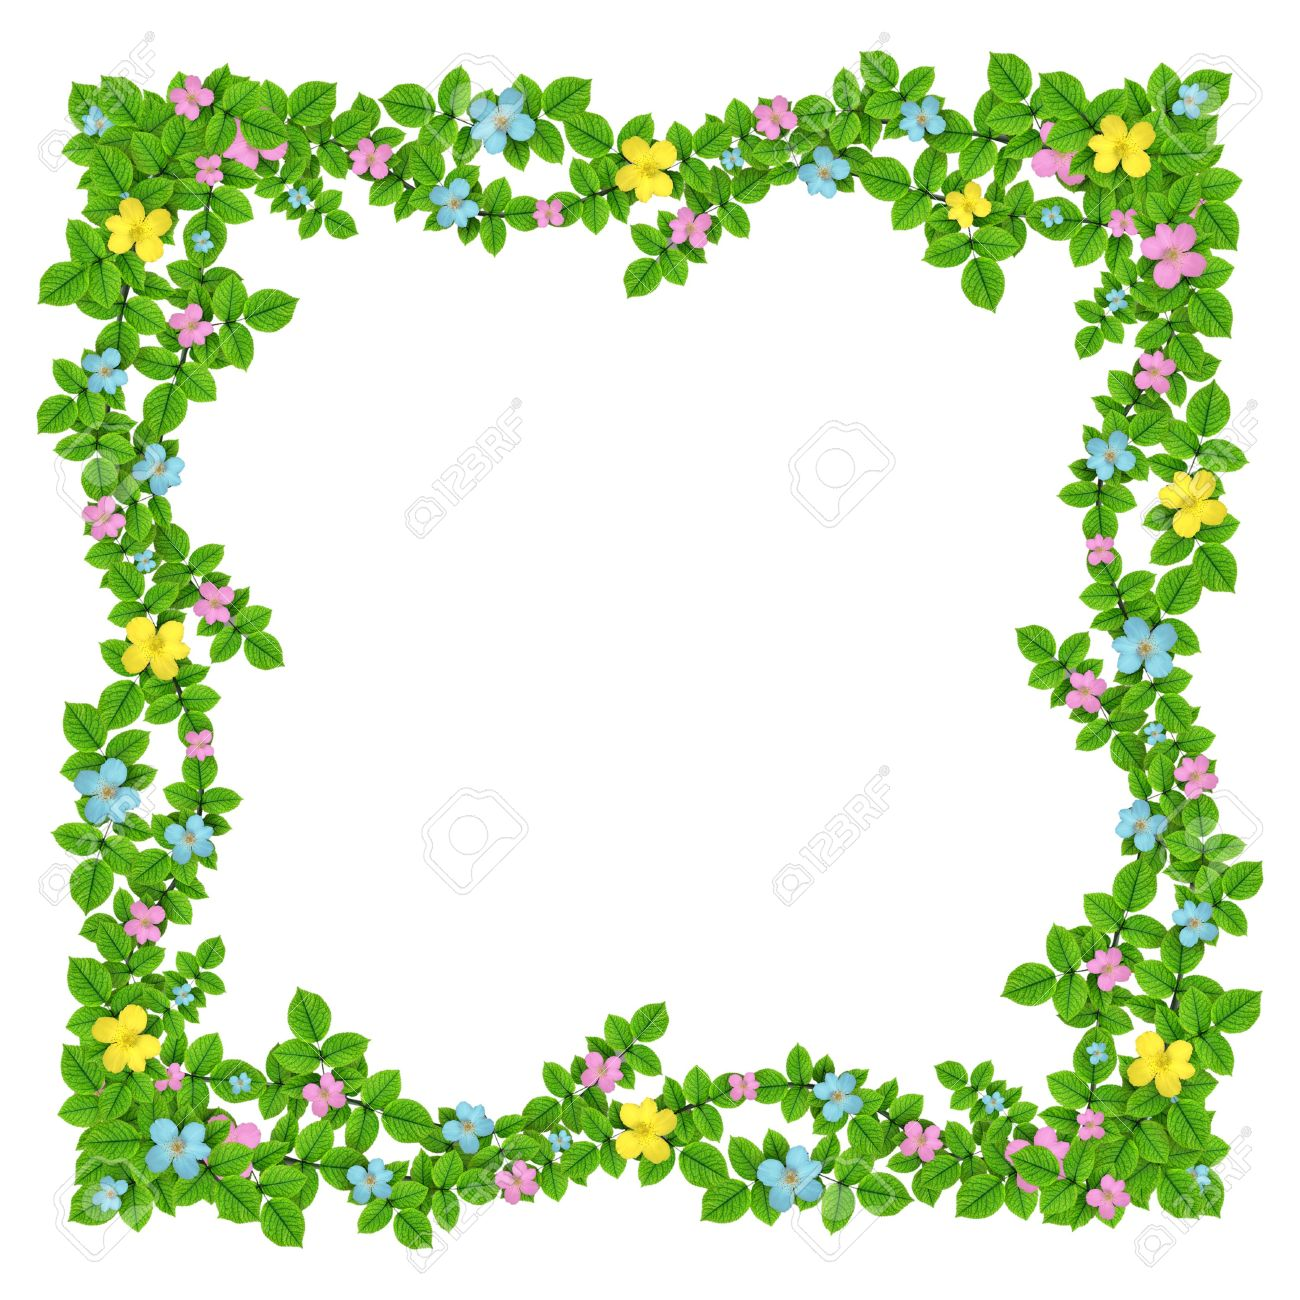 Frame Of Flowers Garland On The White Isolated Background Stock ...